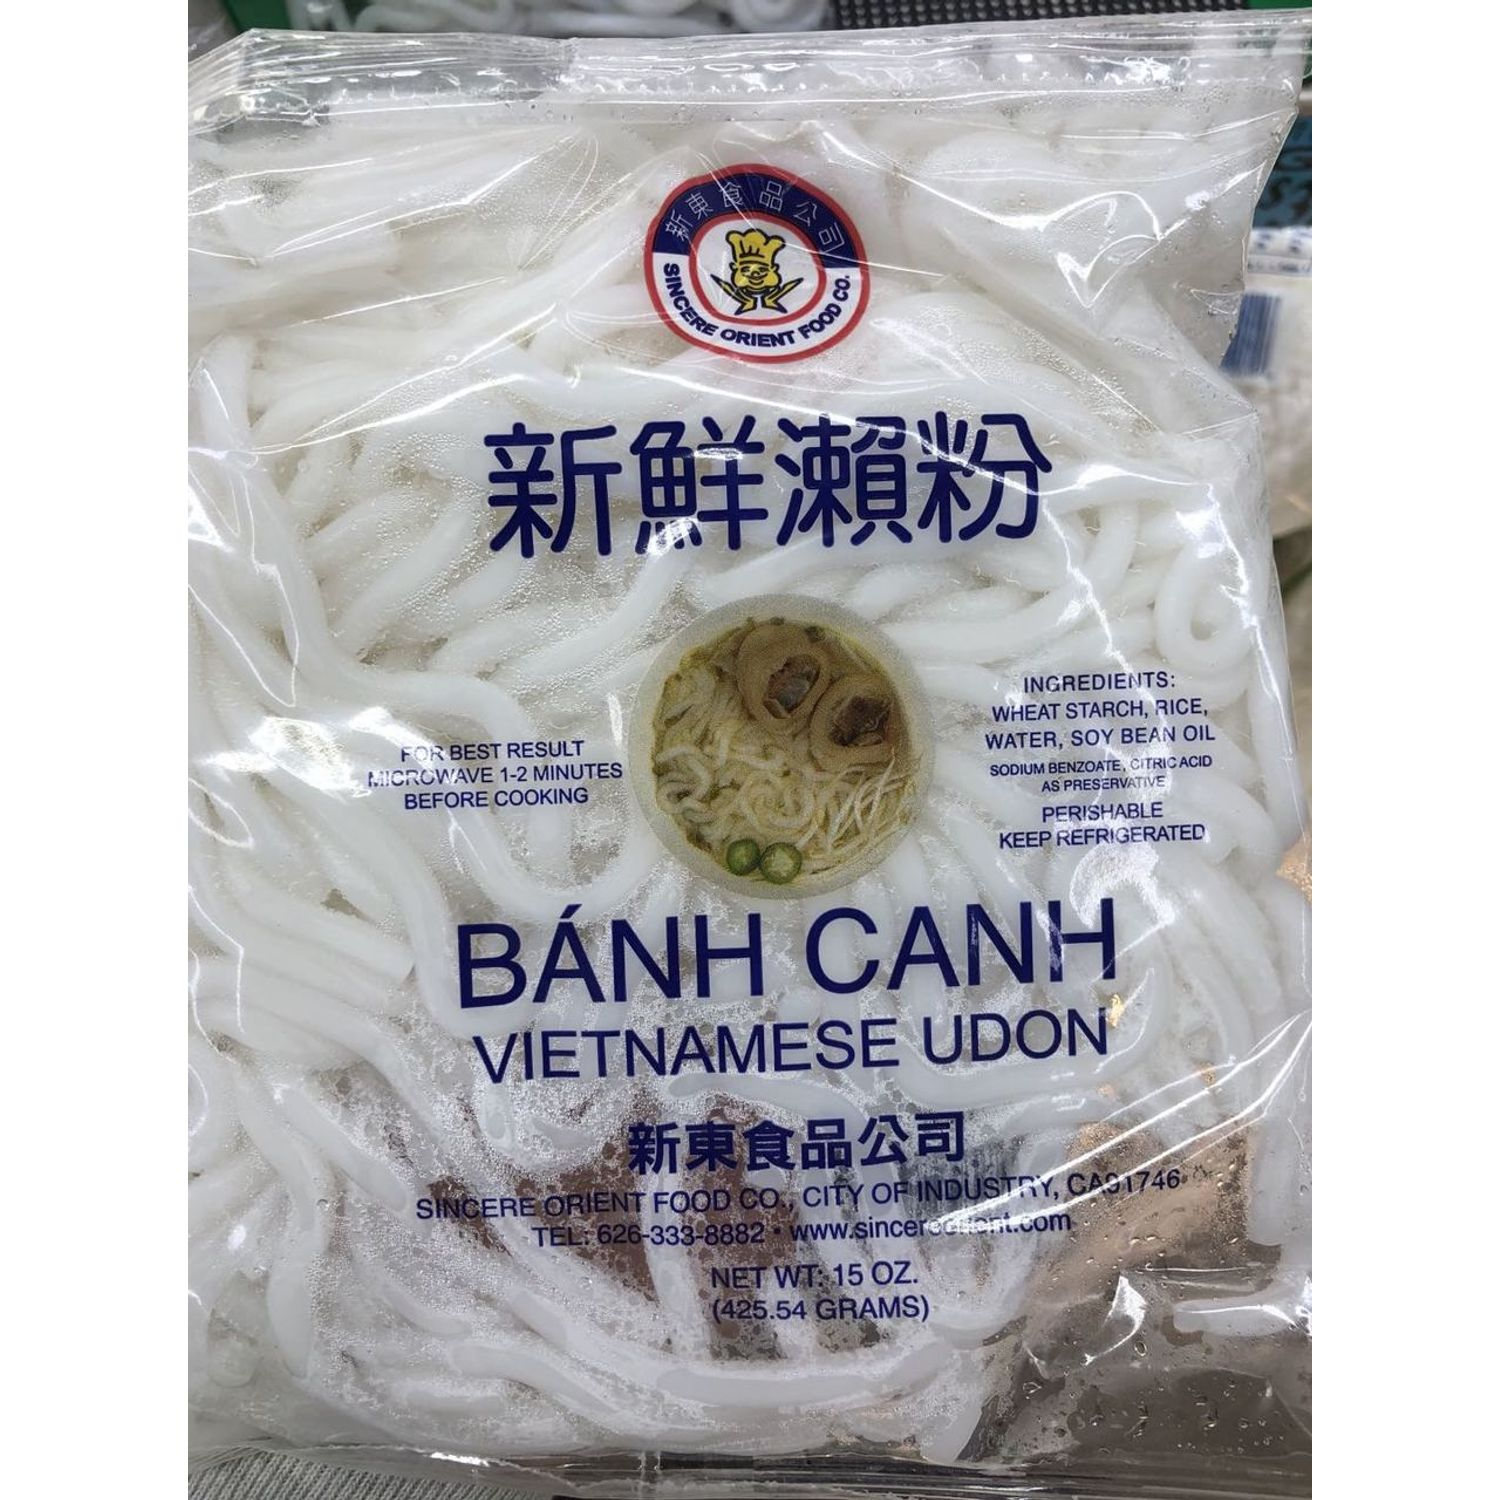 large 16086632857540.2065898112873923 sincere orient banh canh udon blue 15 oz Kdq8tqNsQ